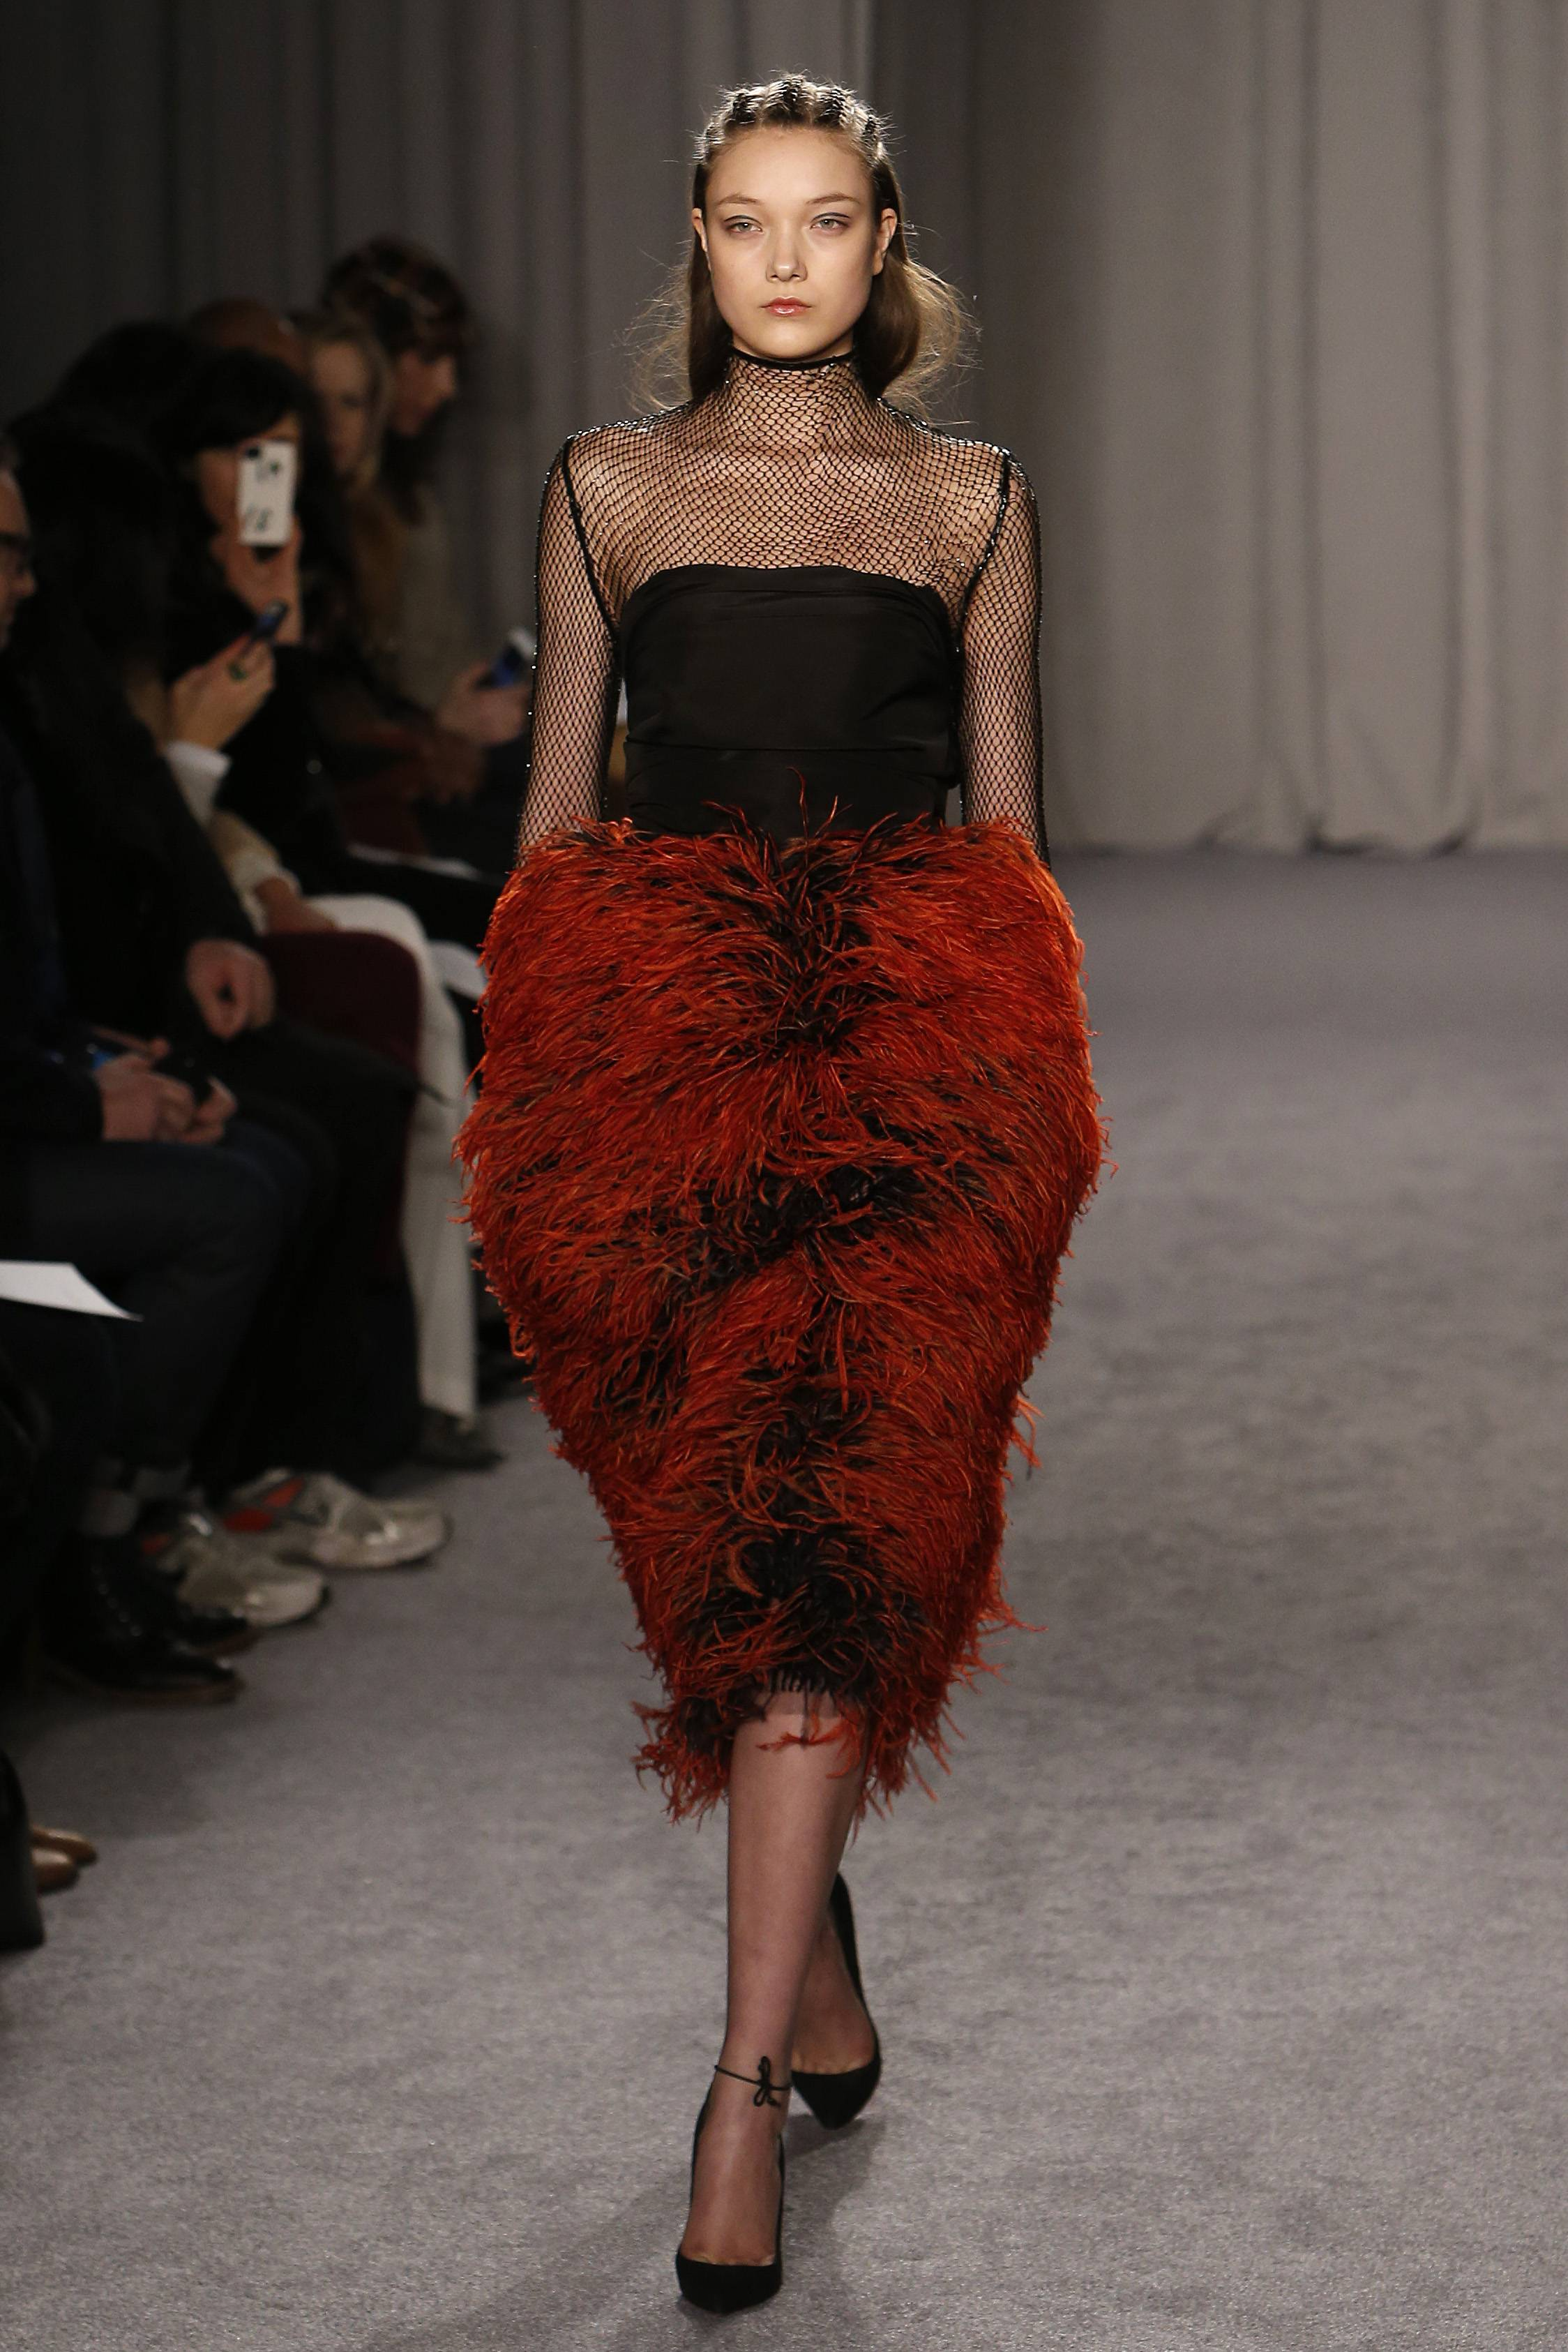 The Marchesa Fall 2014 collection is modeled during Fashion Week in New York.